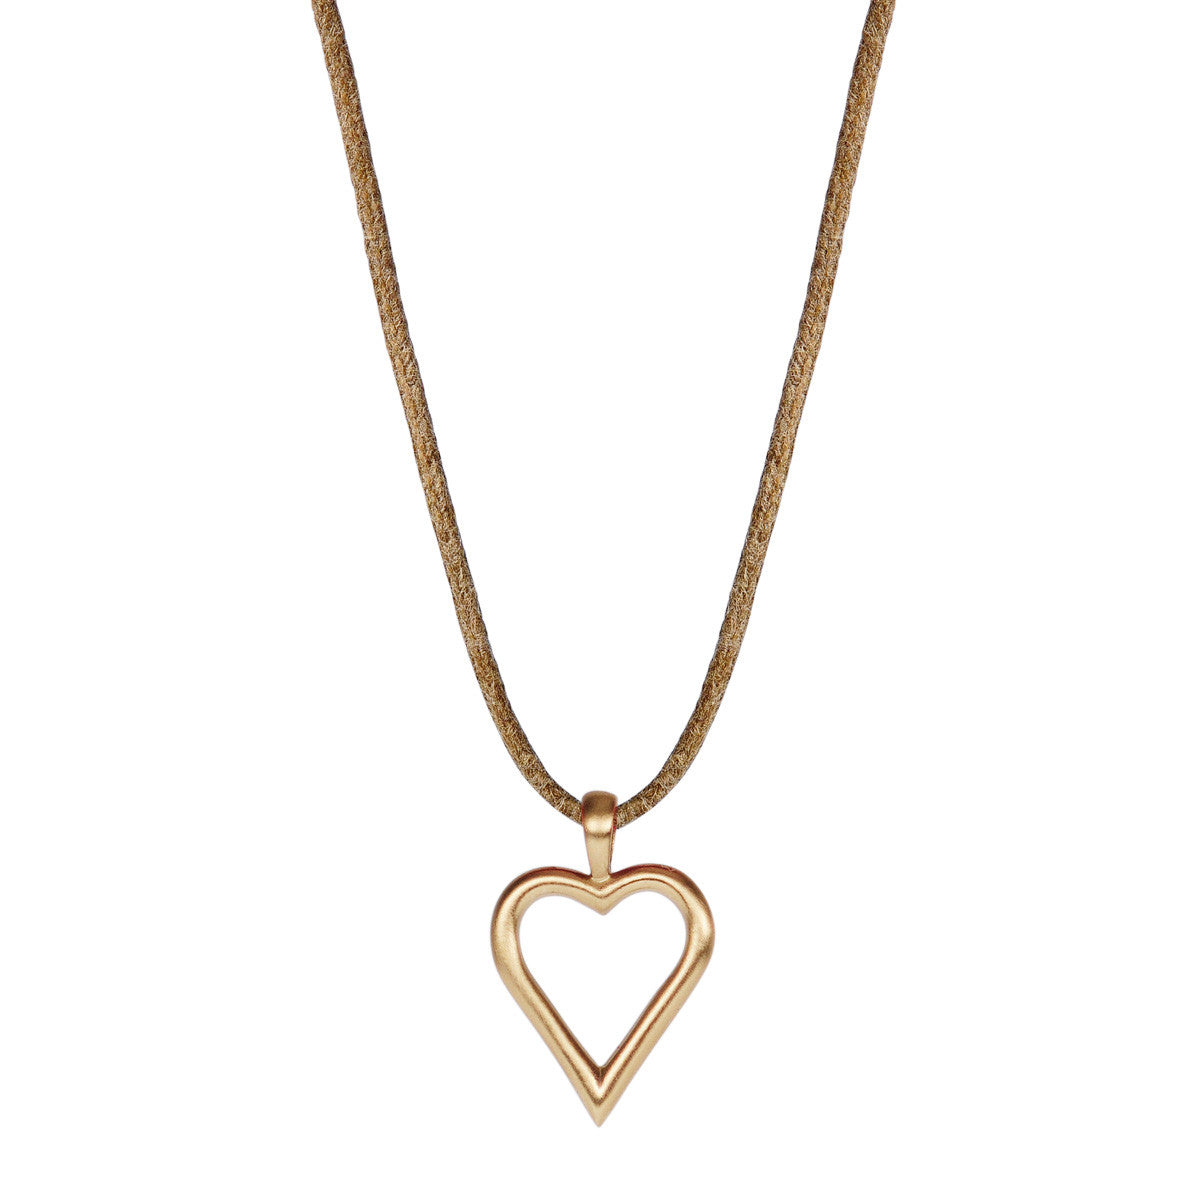 10K Gold Joyful Heart Foundation Open Heart Pendant on Natural Cord